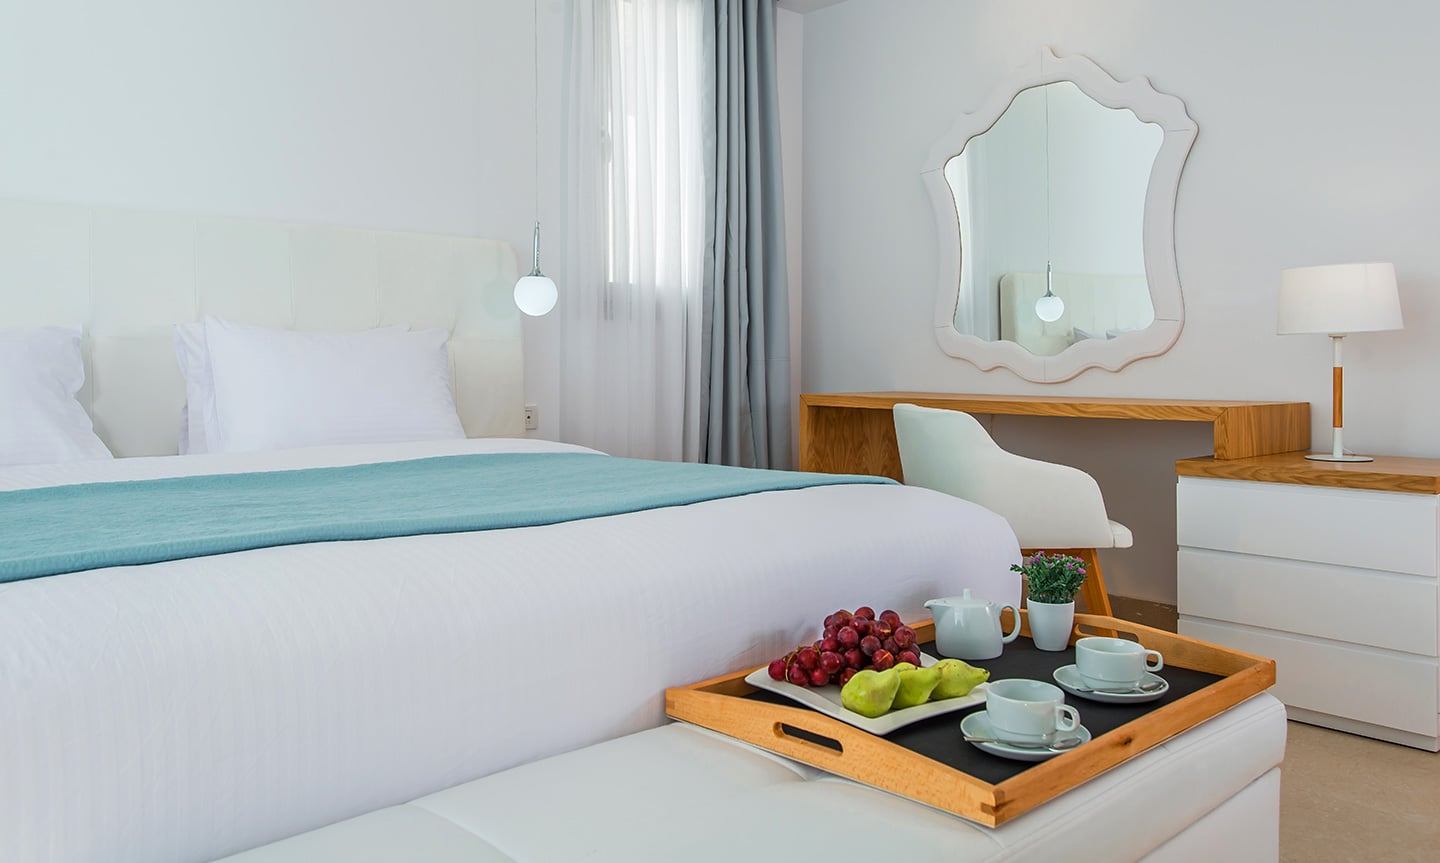 A comfortable king size bed and a tray with coffee and fruits by the bed in White Rock of Kos.